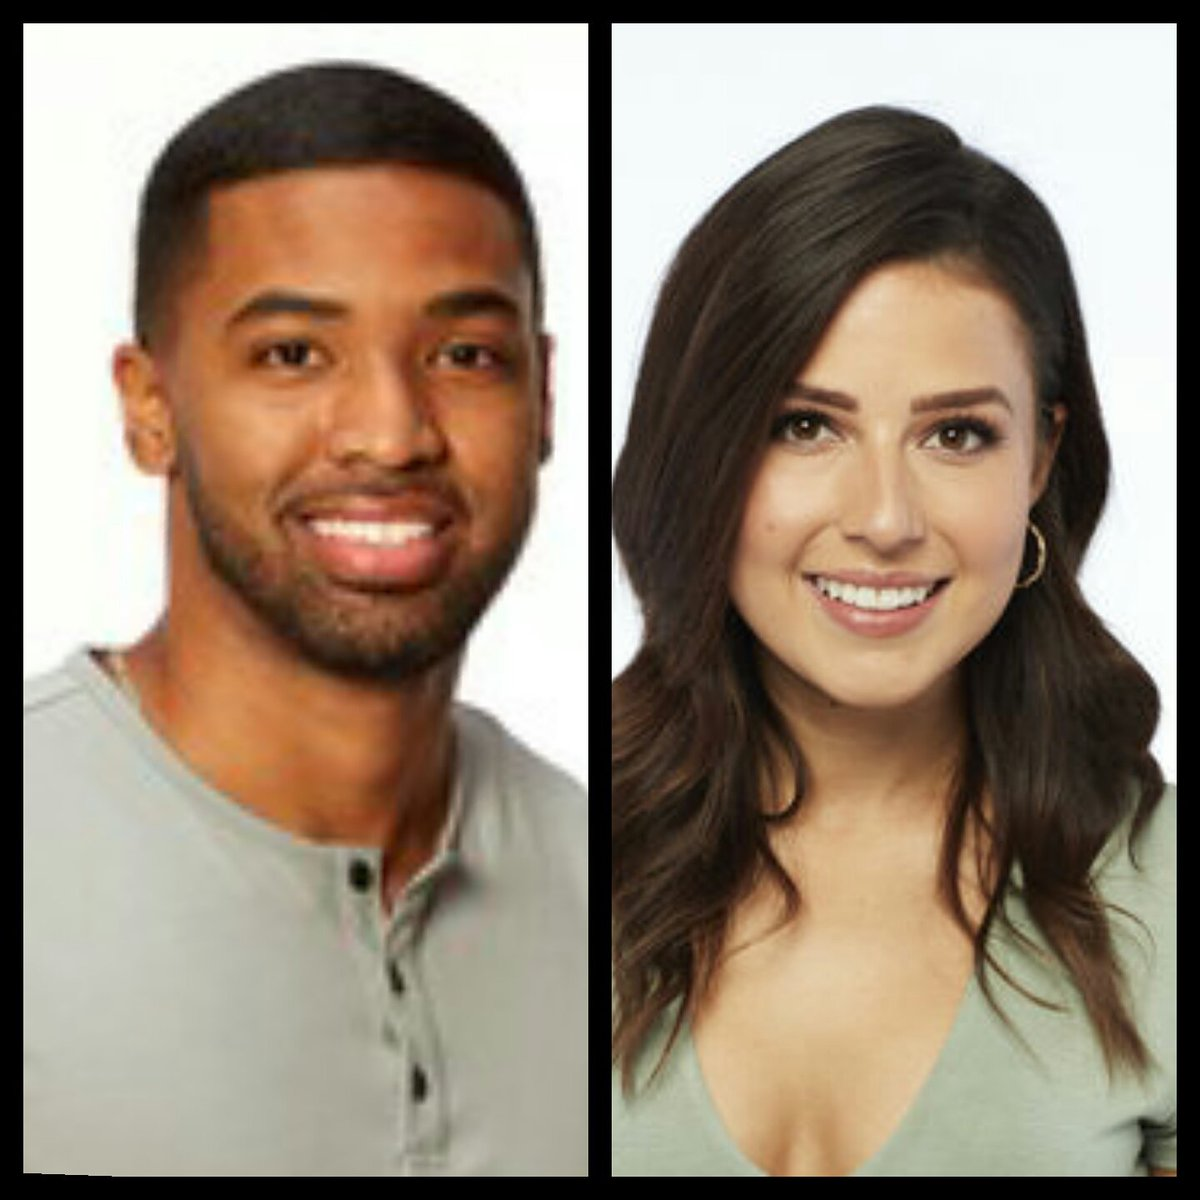 The most openly emotionally mature man and woman of this franchise that I know. Protect them always #Ivan #Katie  #TheBachelor #TheBachelorette #BachelorNation